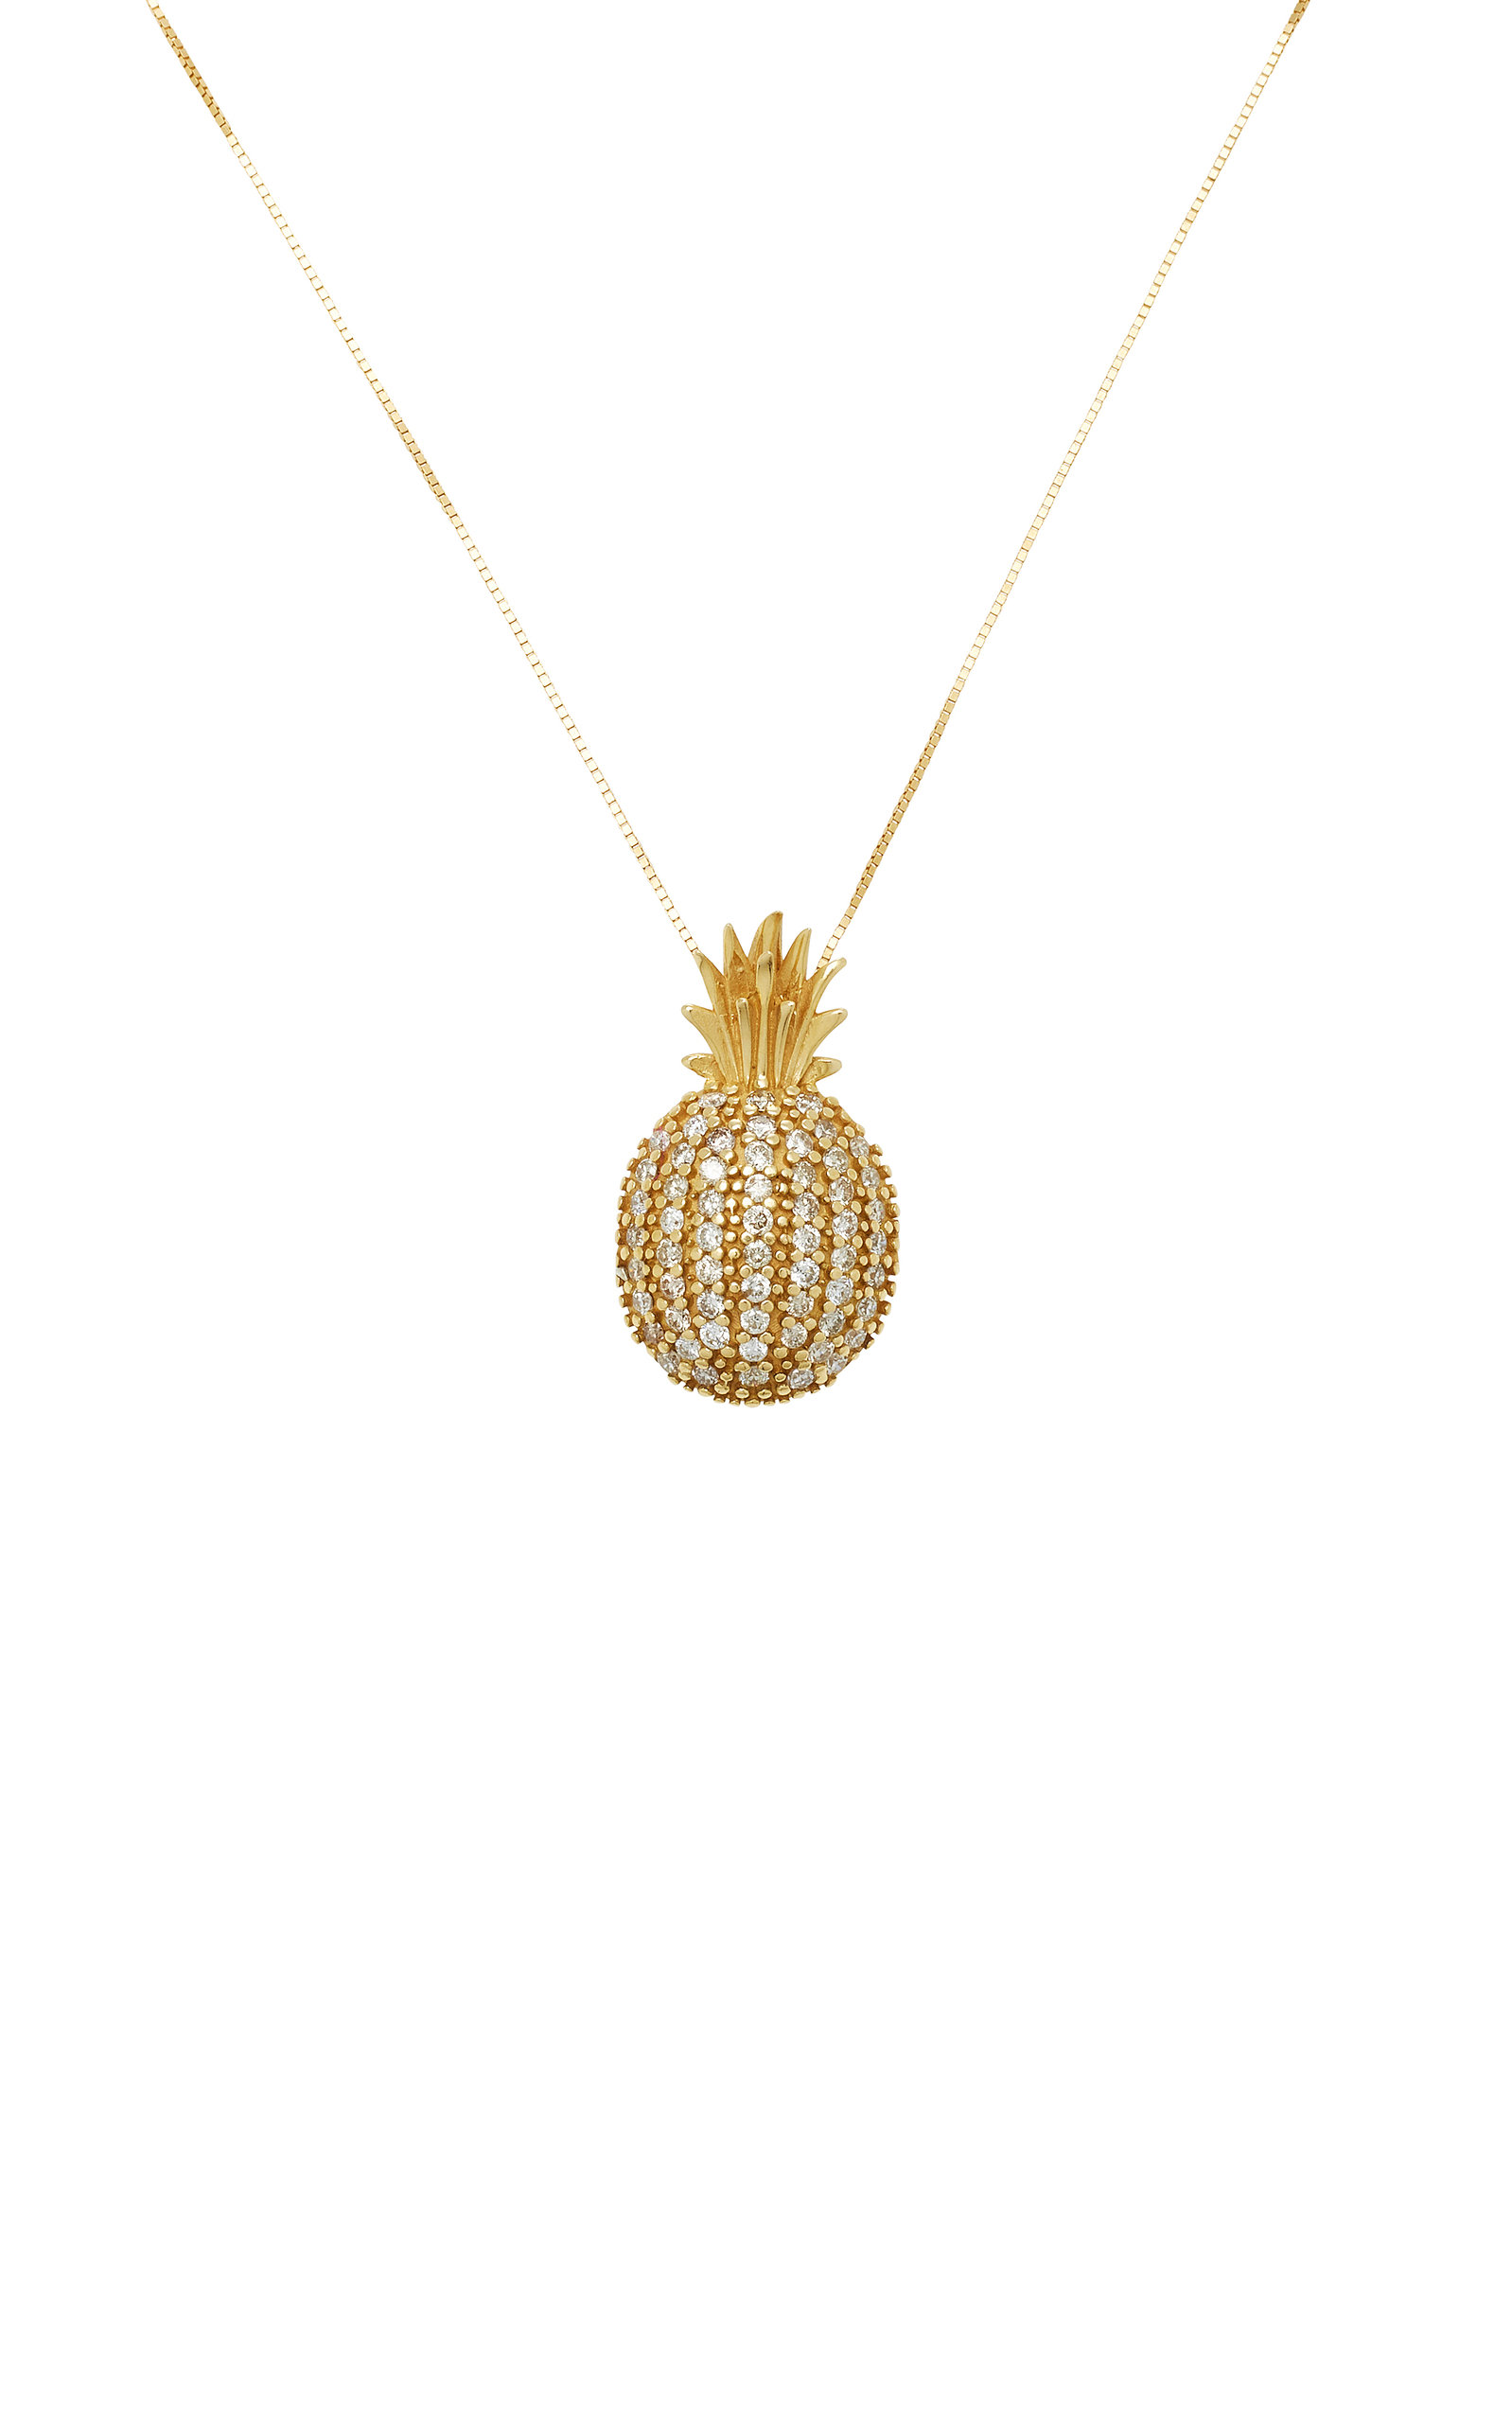 pineapple silver gold necklace elegant products vila rosa rose friendship